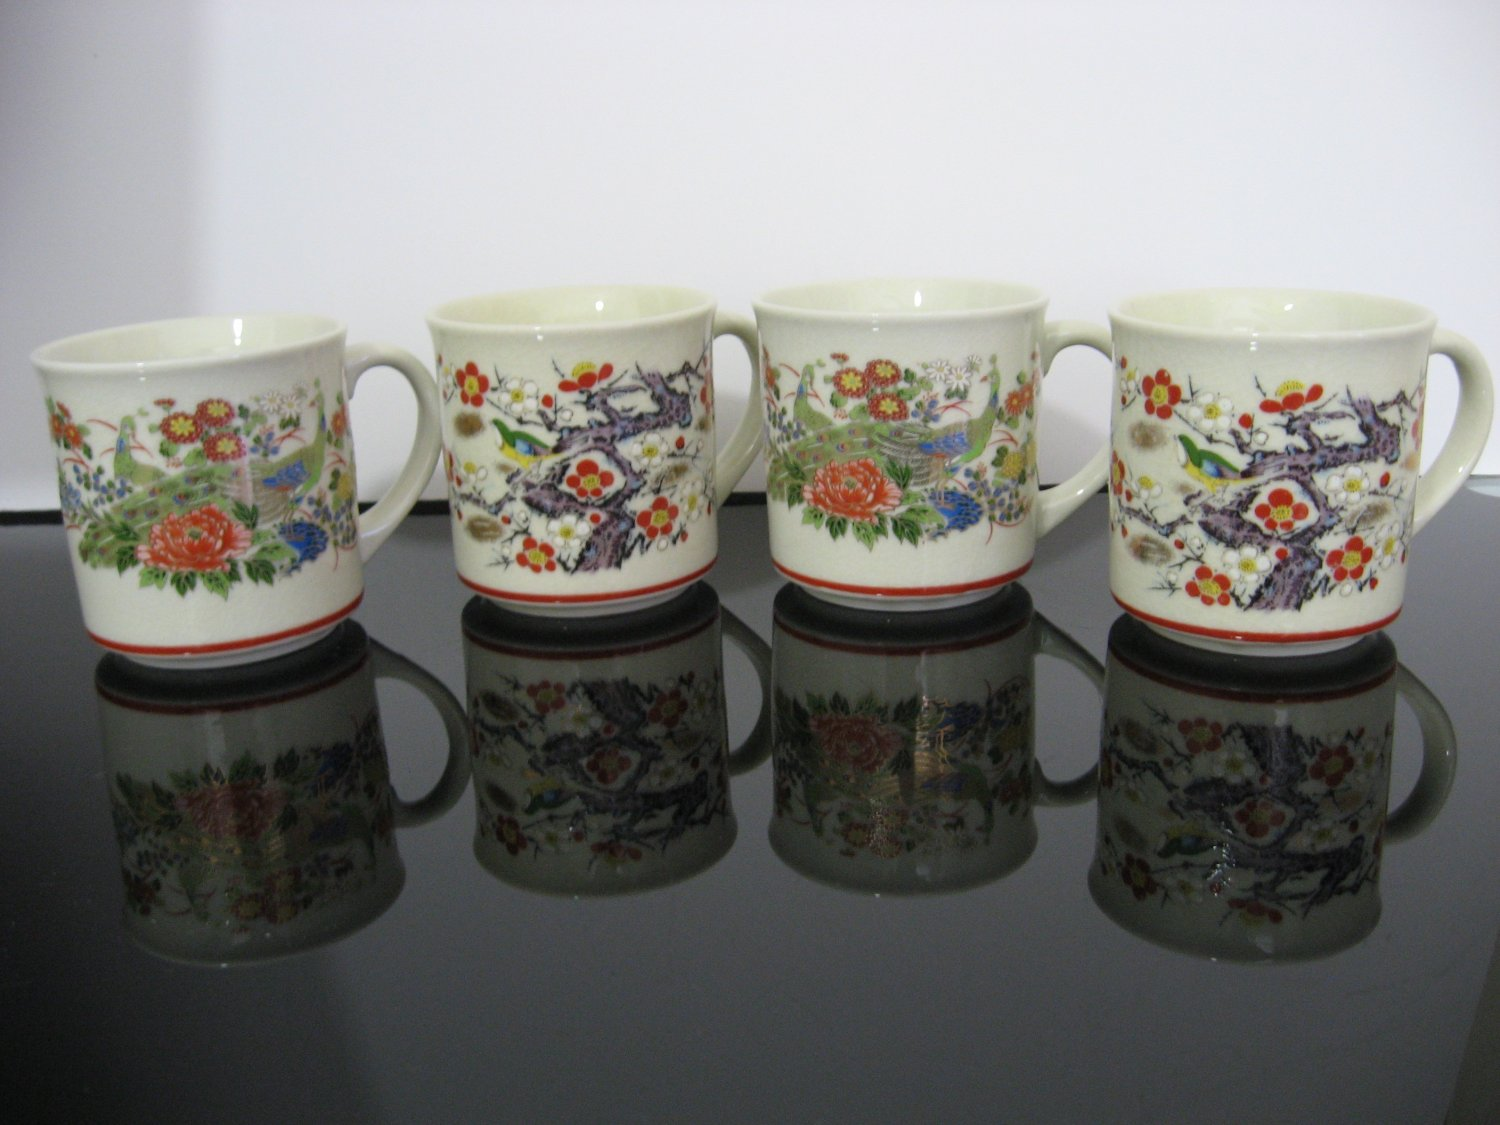 4 Pottery Cups, Mugs - Peacocks, Birds, Flowers Oriental Asian Pottery - Made in Japan